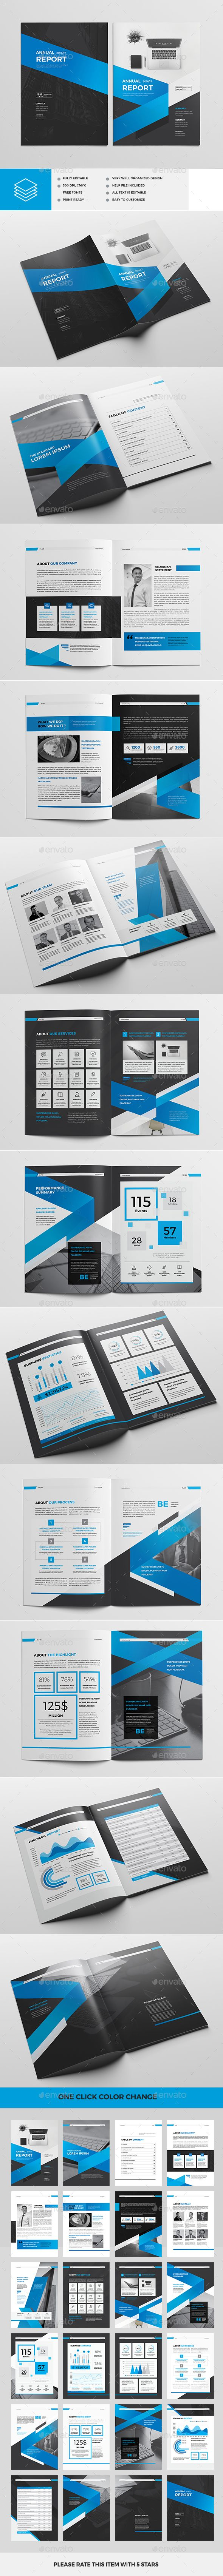 Annual Report Brochure Template InDesign INDD | Brochure Templates ...